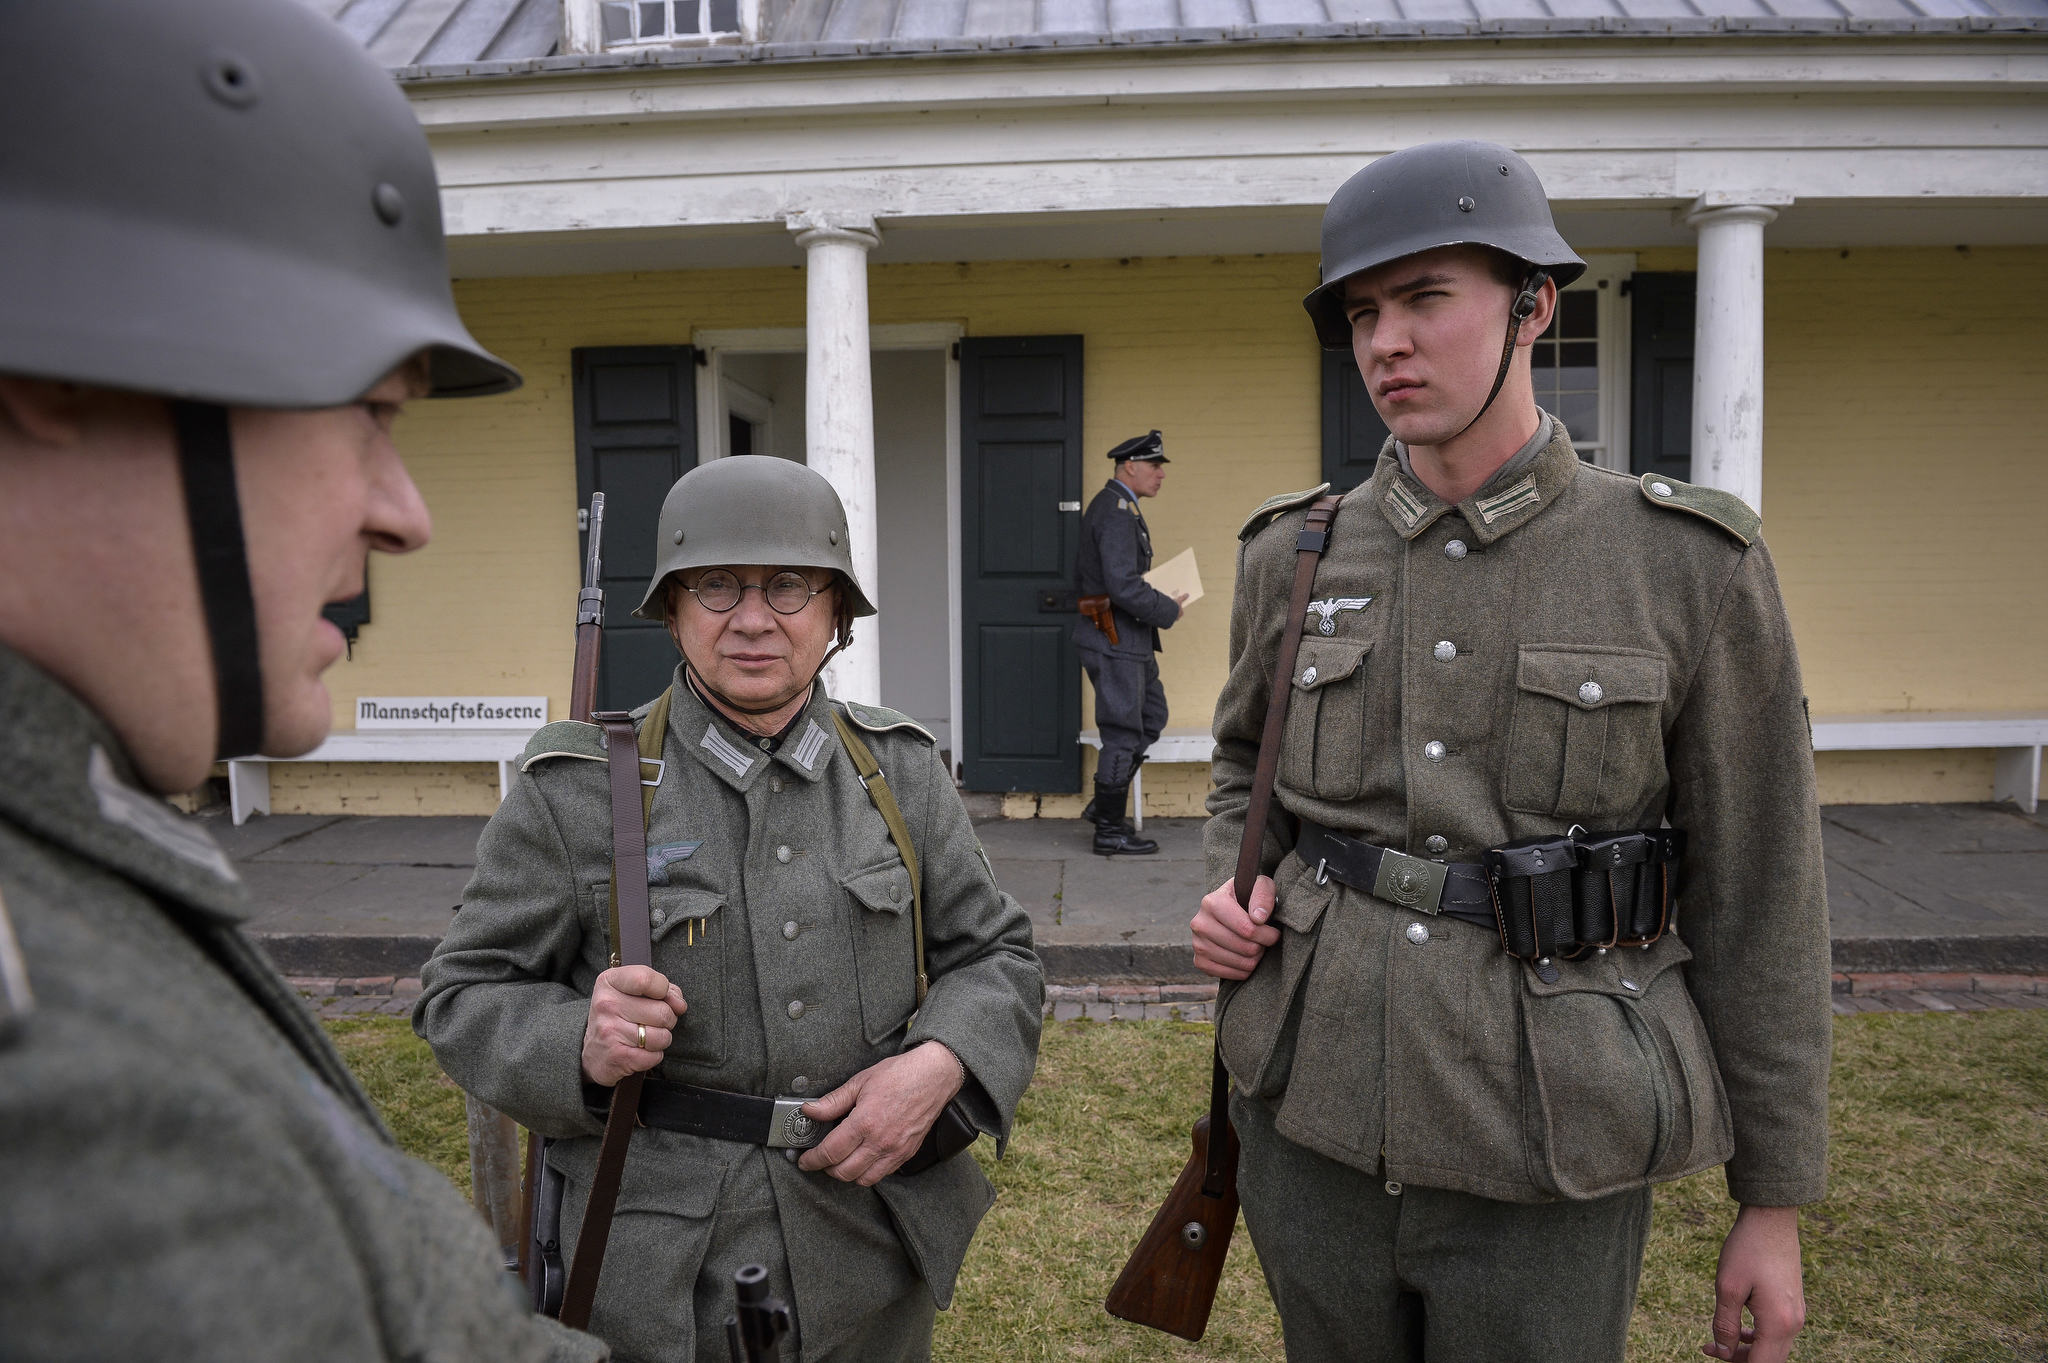 What's with the Nazi reenactors at Fort Mifflin?